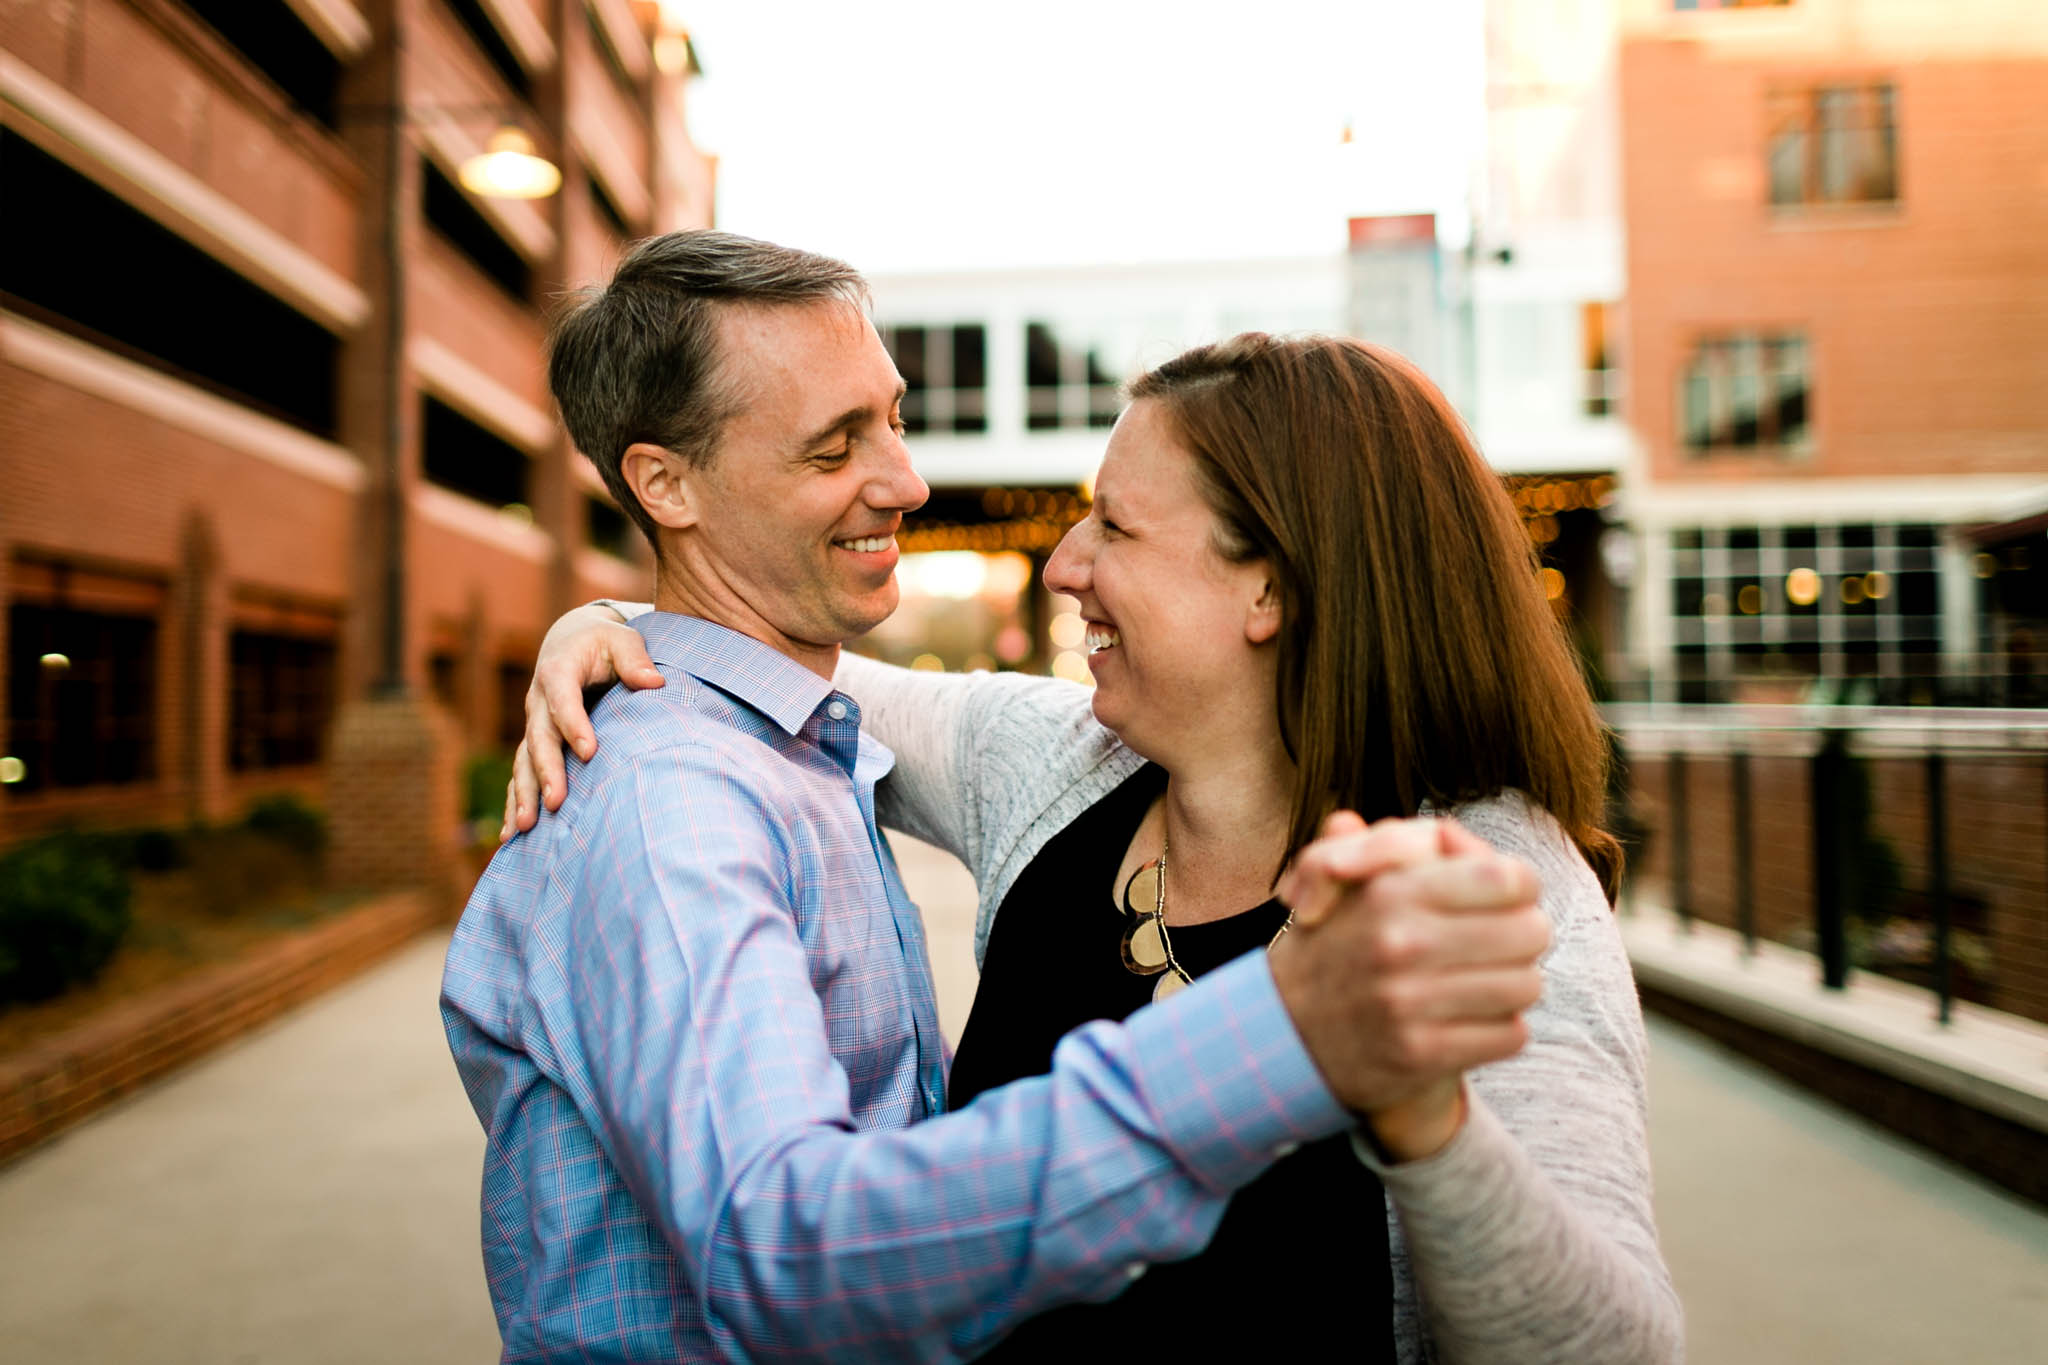 Durham Photographer   Couple laughing and dancing at American Tobacco Campus   By G. Lin Photography